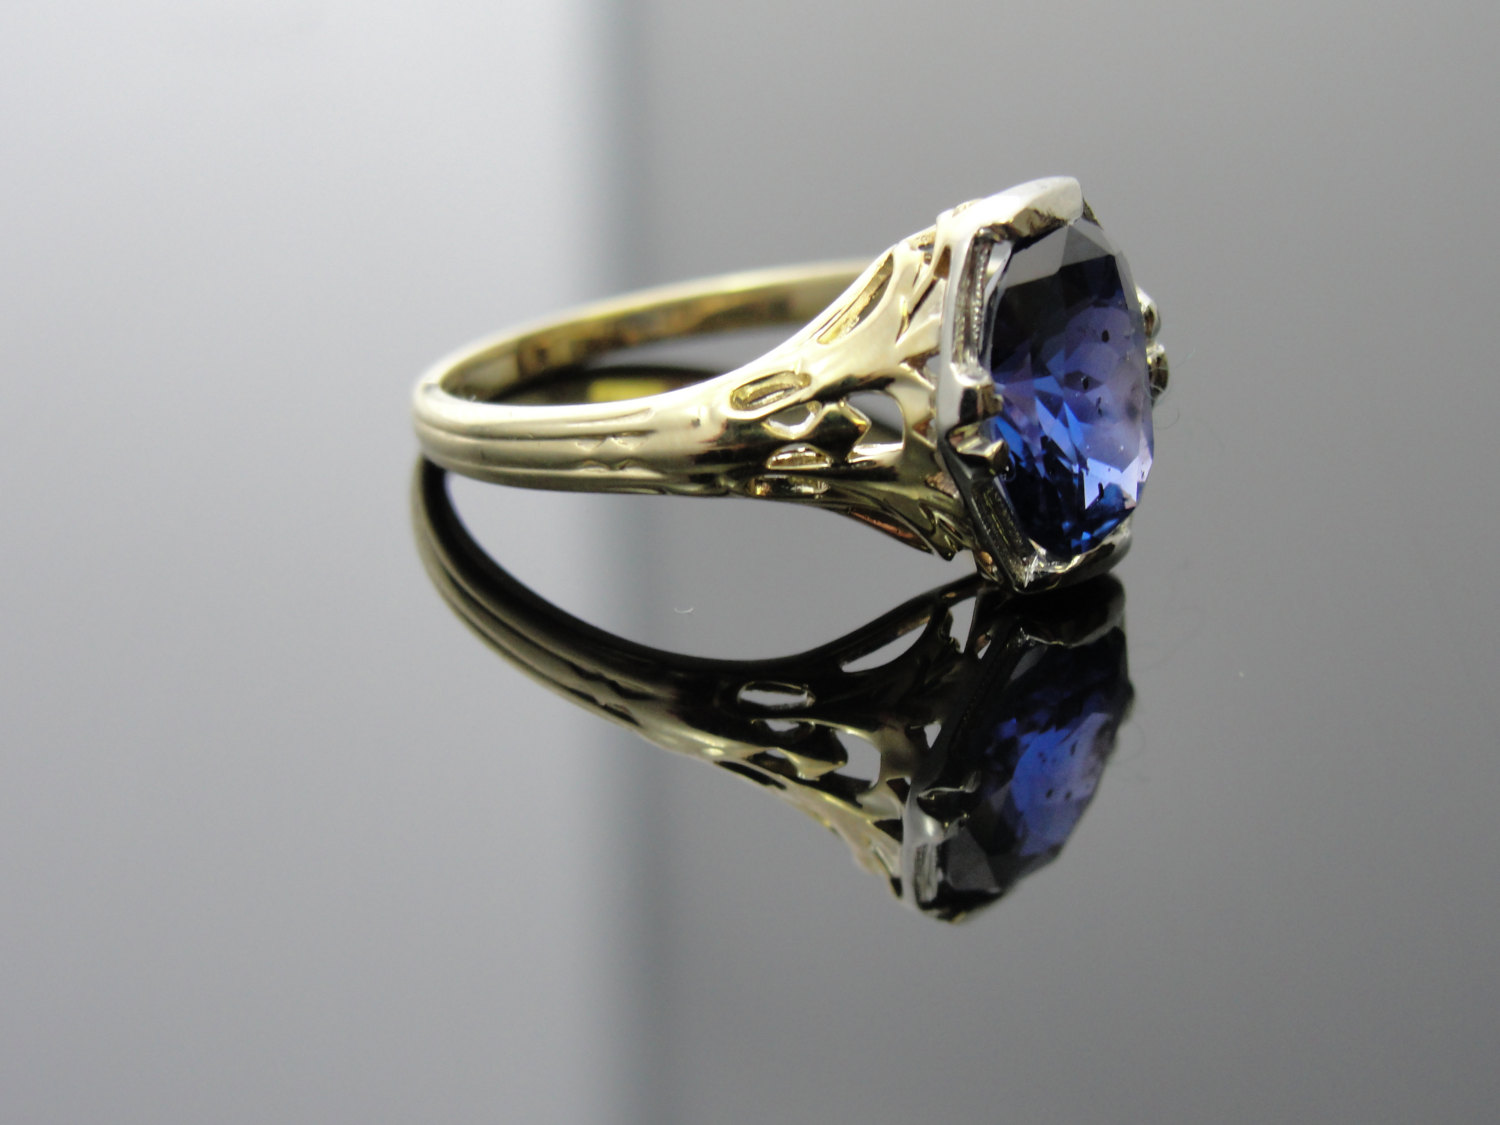 art deco wedding rings art deco wedding band Light Blue Sapphire Halo Engagement Rings Art nouveau blue sapphire